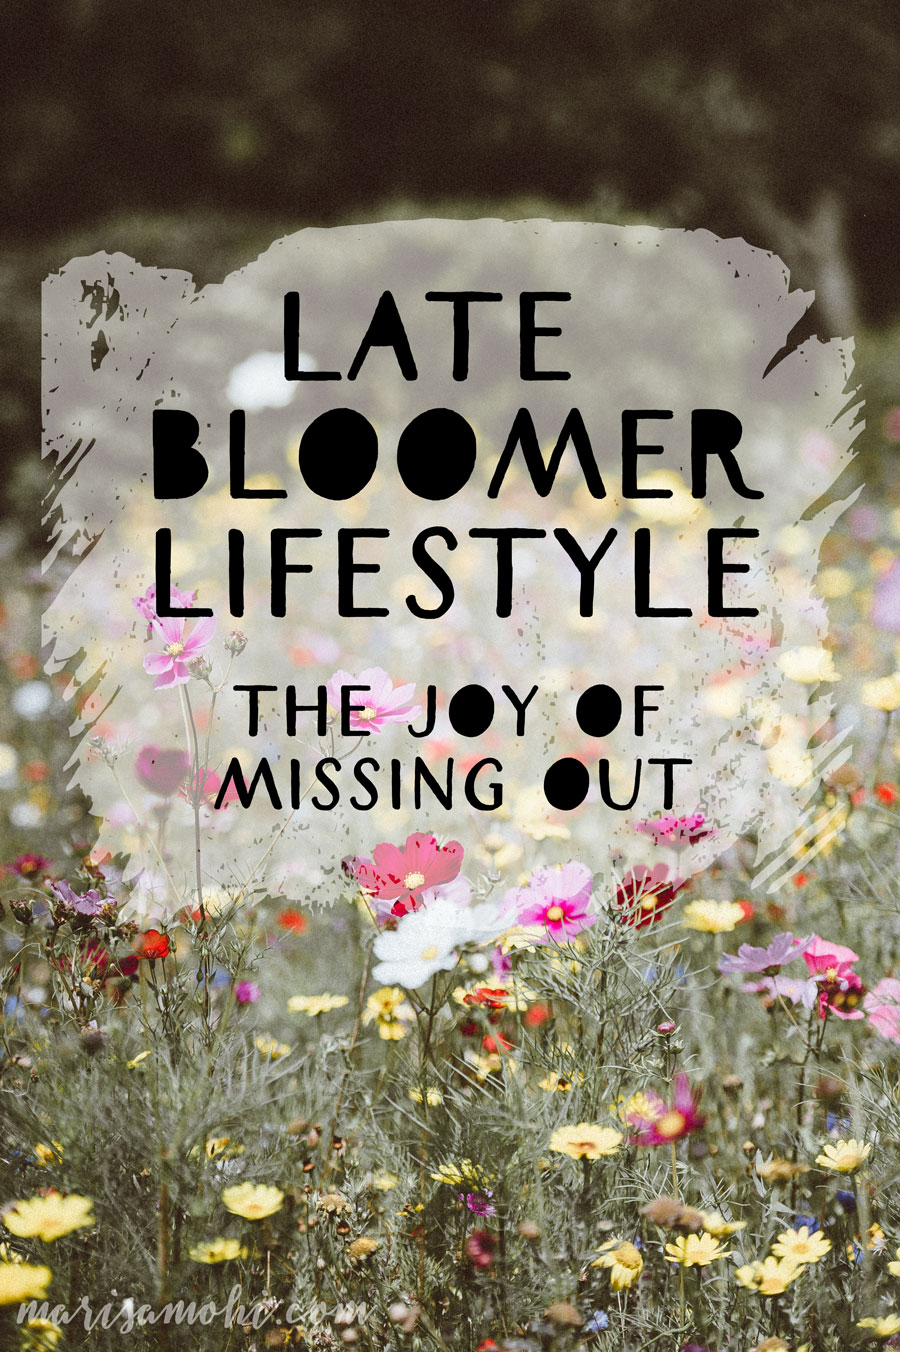 Late Bloomer Lifestyle: The Joy of Missing Out